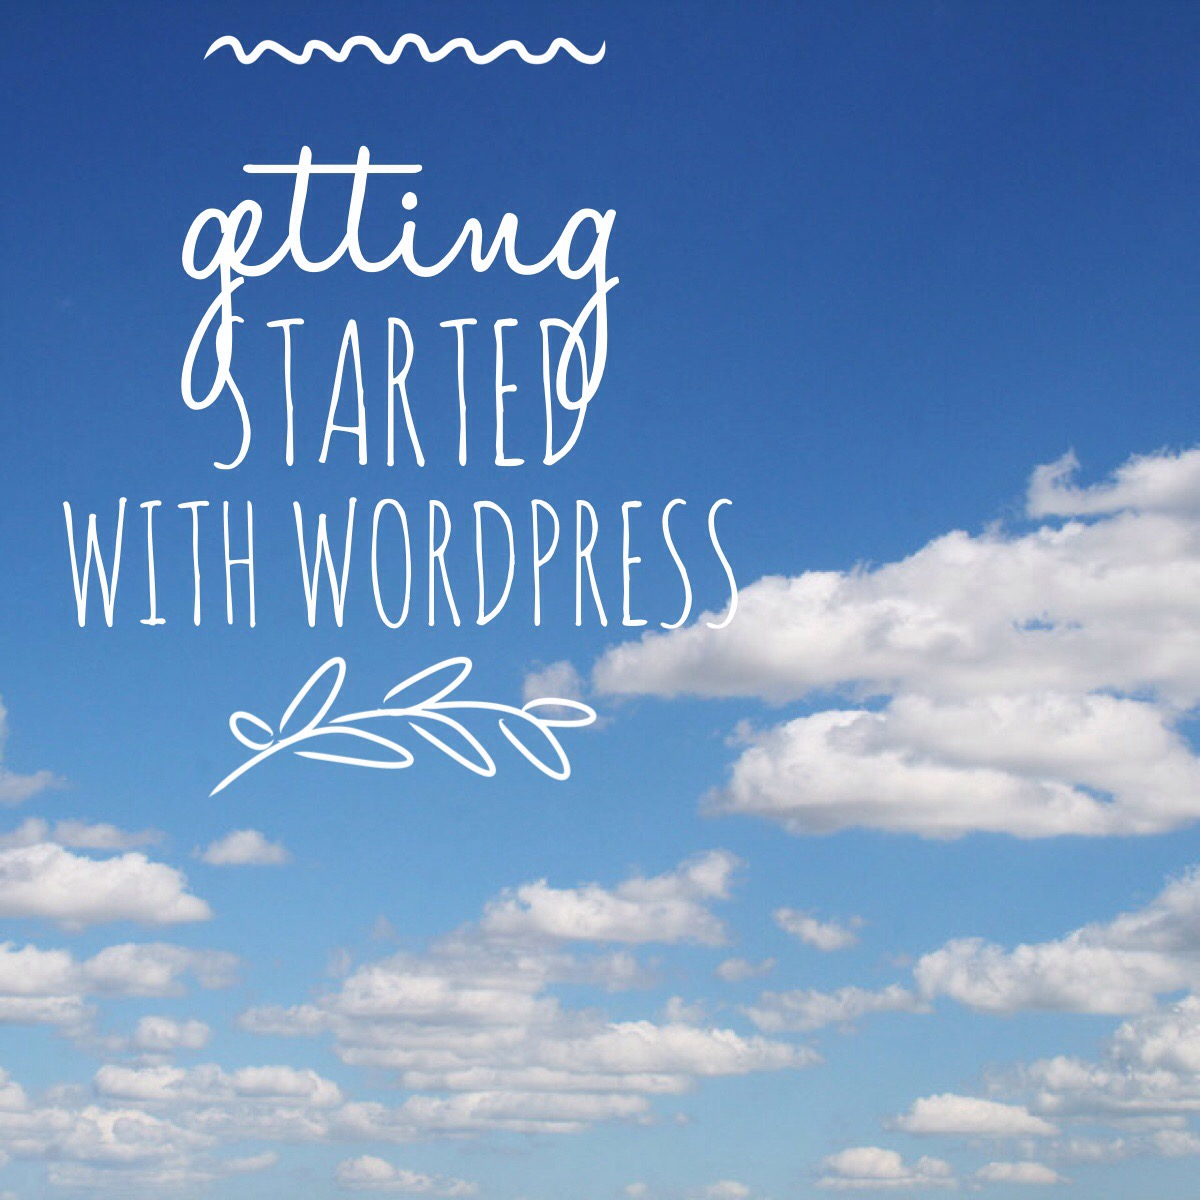 To Get Started with WordPress, You Need These